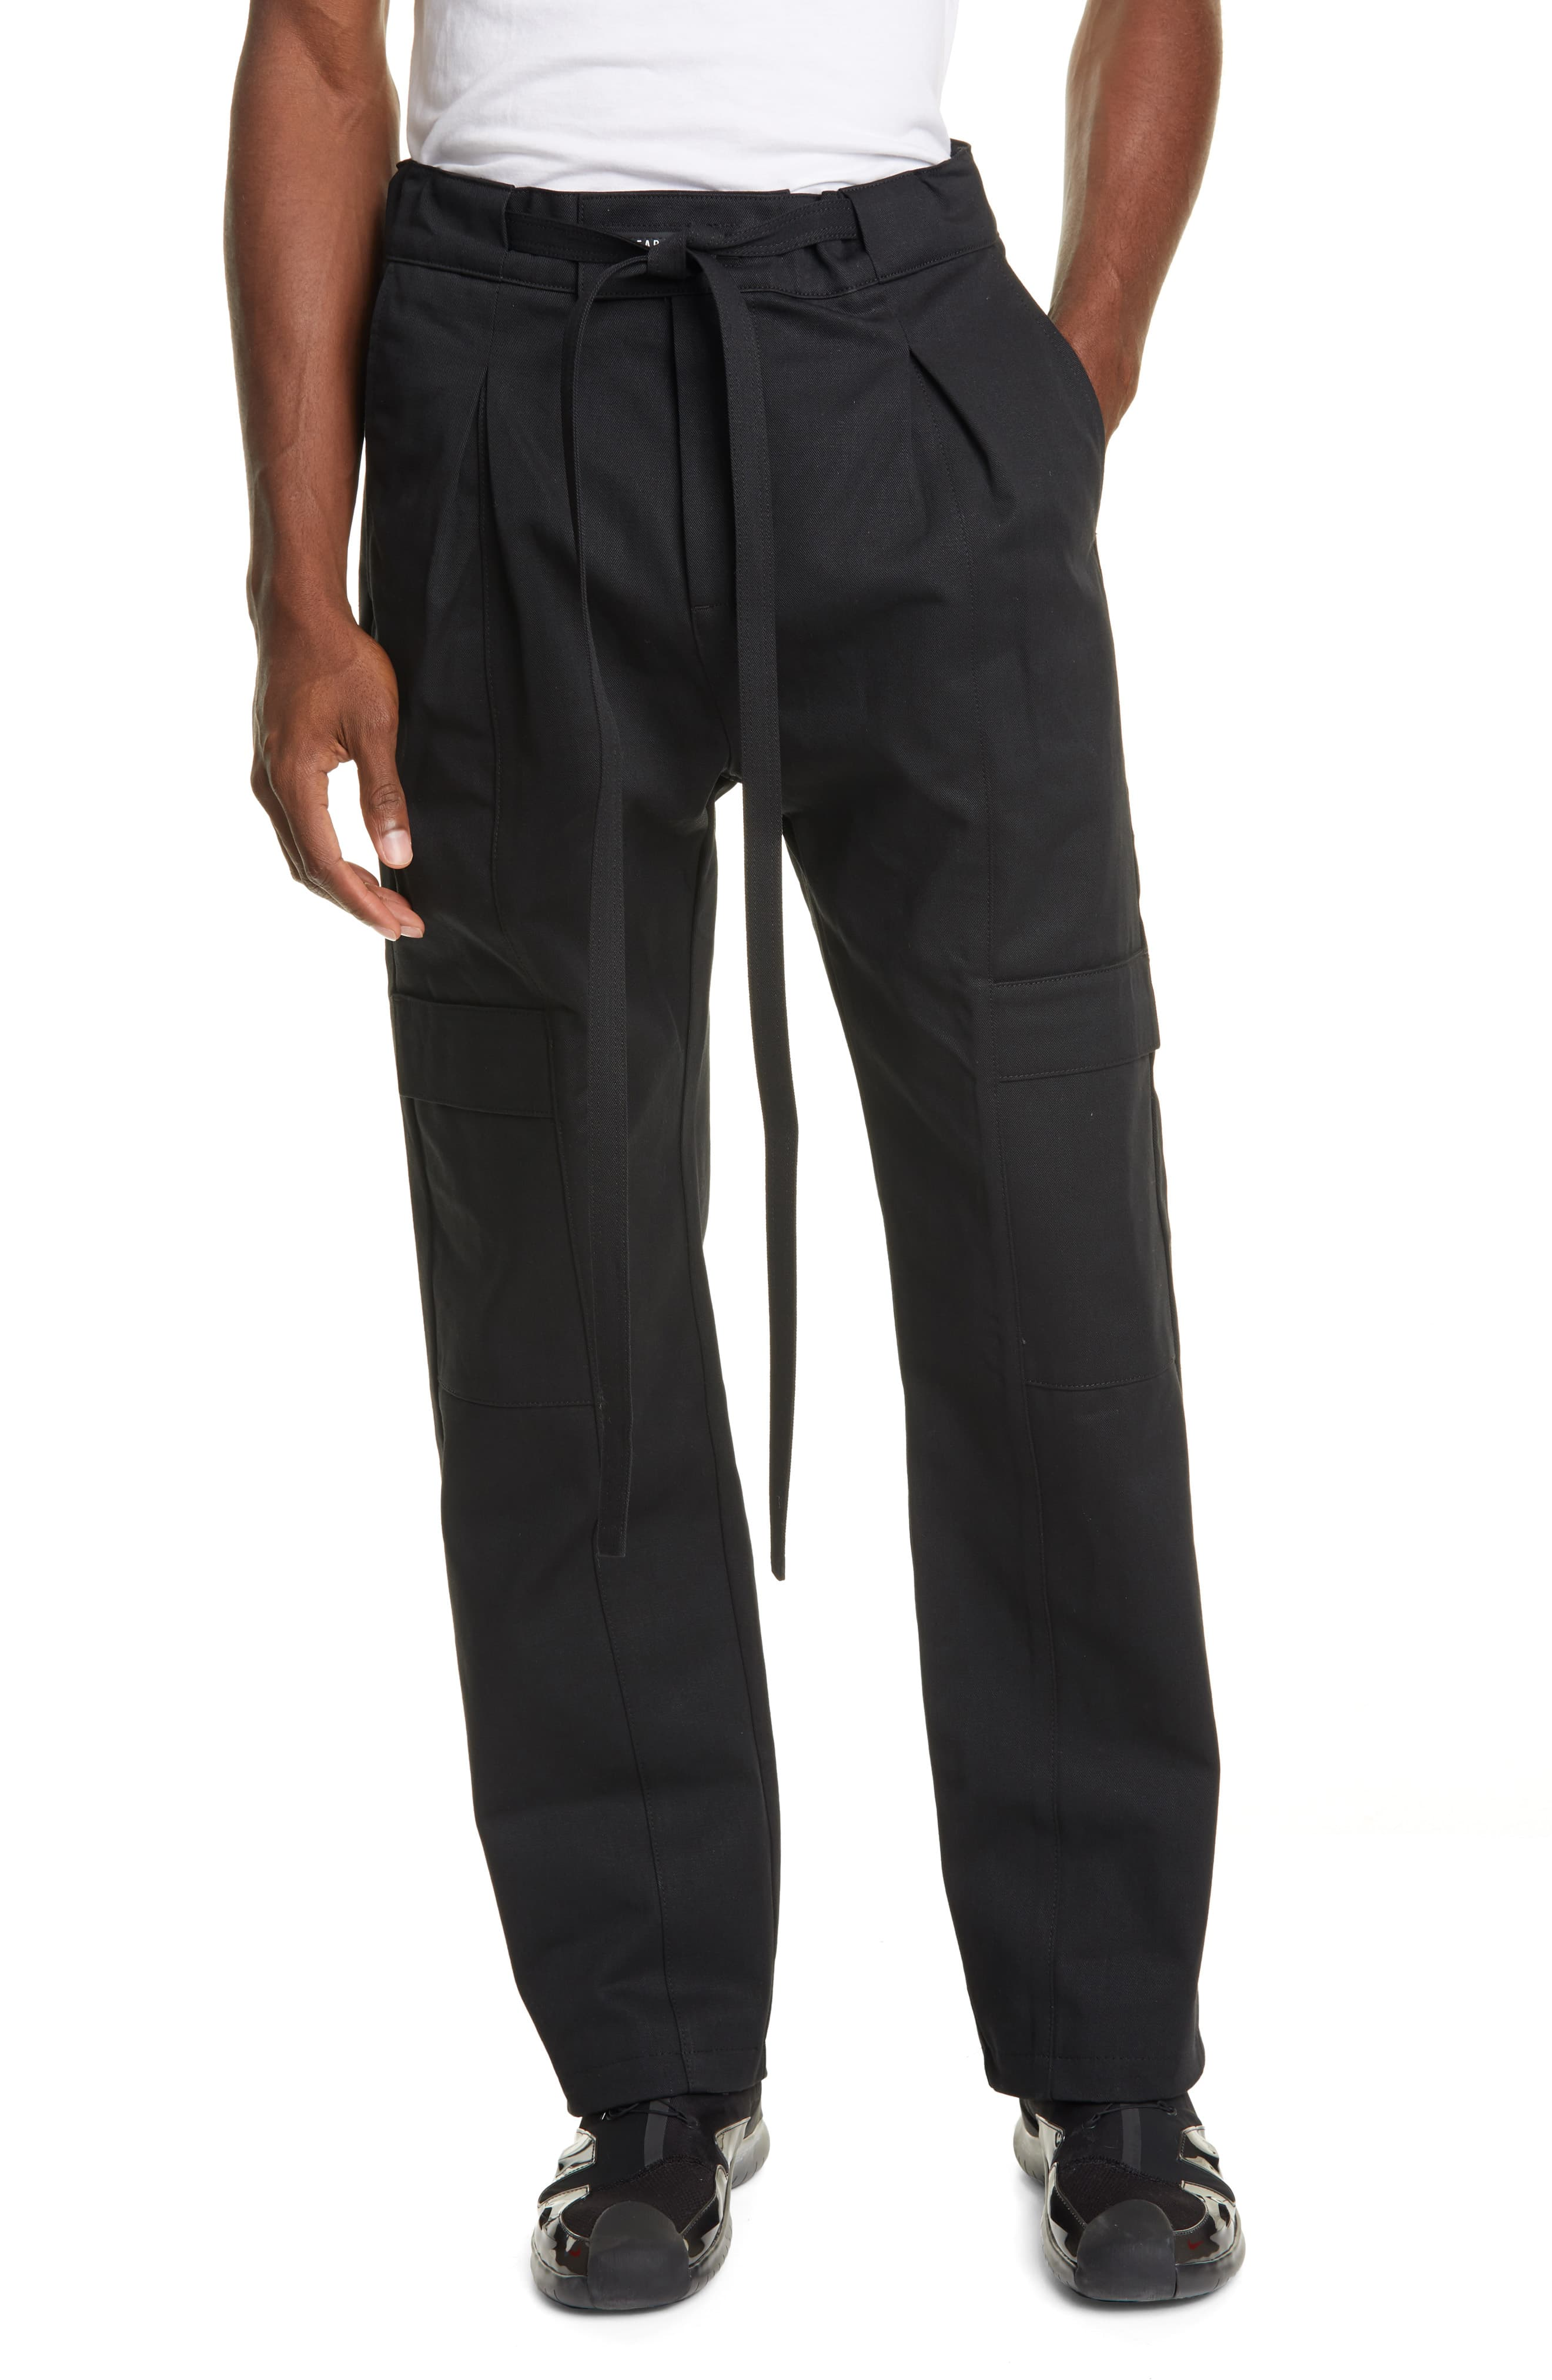 free shipping new lower prices diversified latest designs Men's Fear Of God Baggy Cargo Pants, Size Small - Black